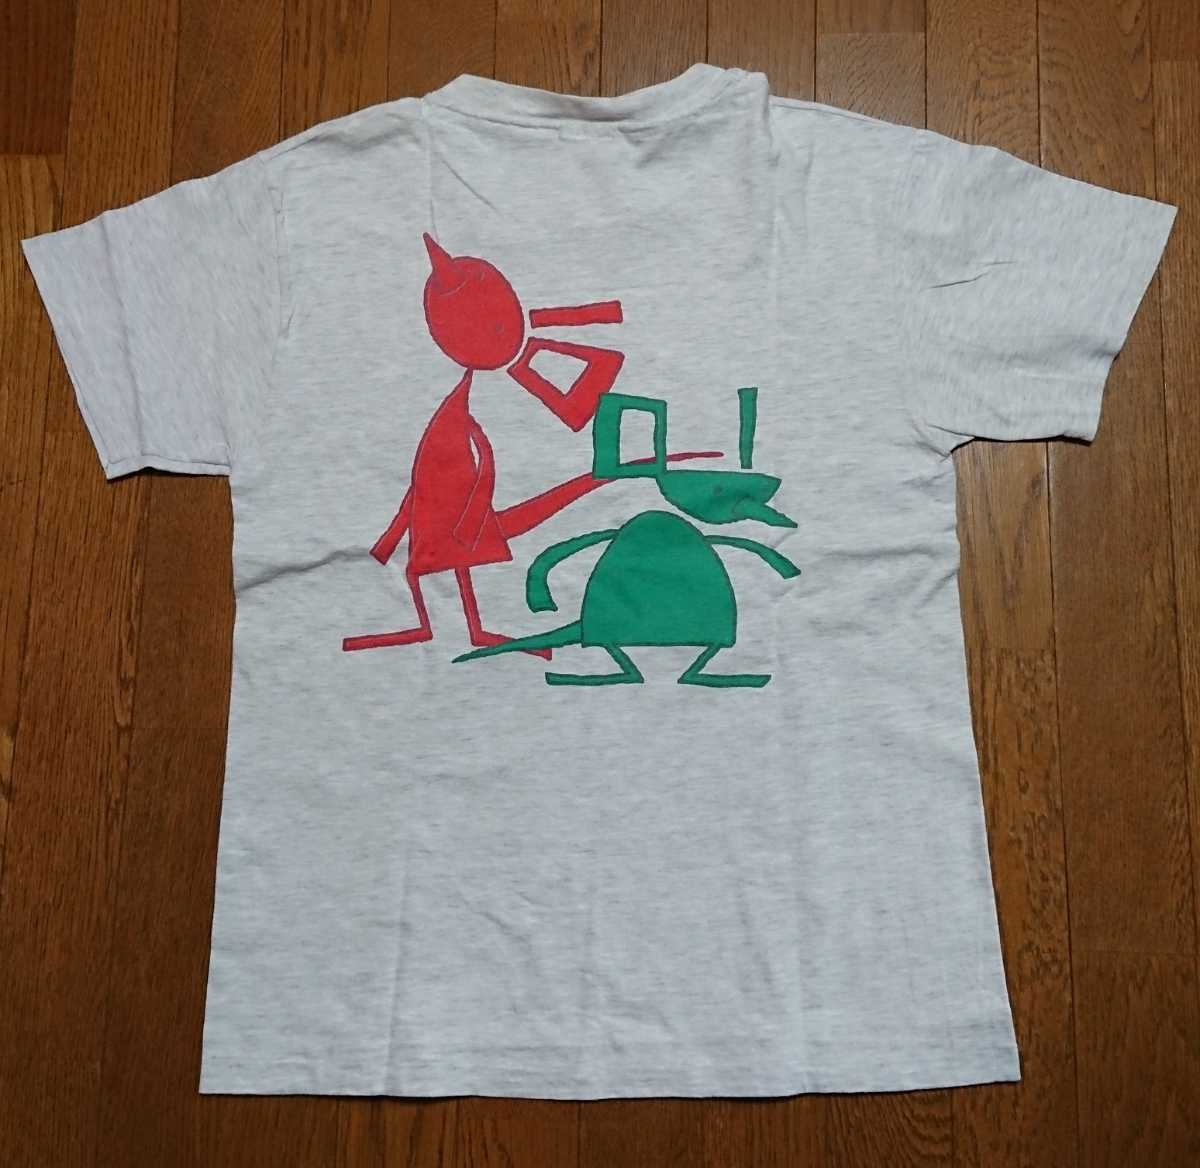 90s MTV Tシャツ グレー USED / nirvana pearl jam hole alice in chains soundgarden stone temple pilots sonic youth mudhoney _画像2